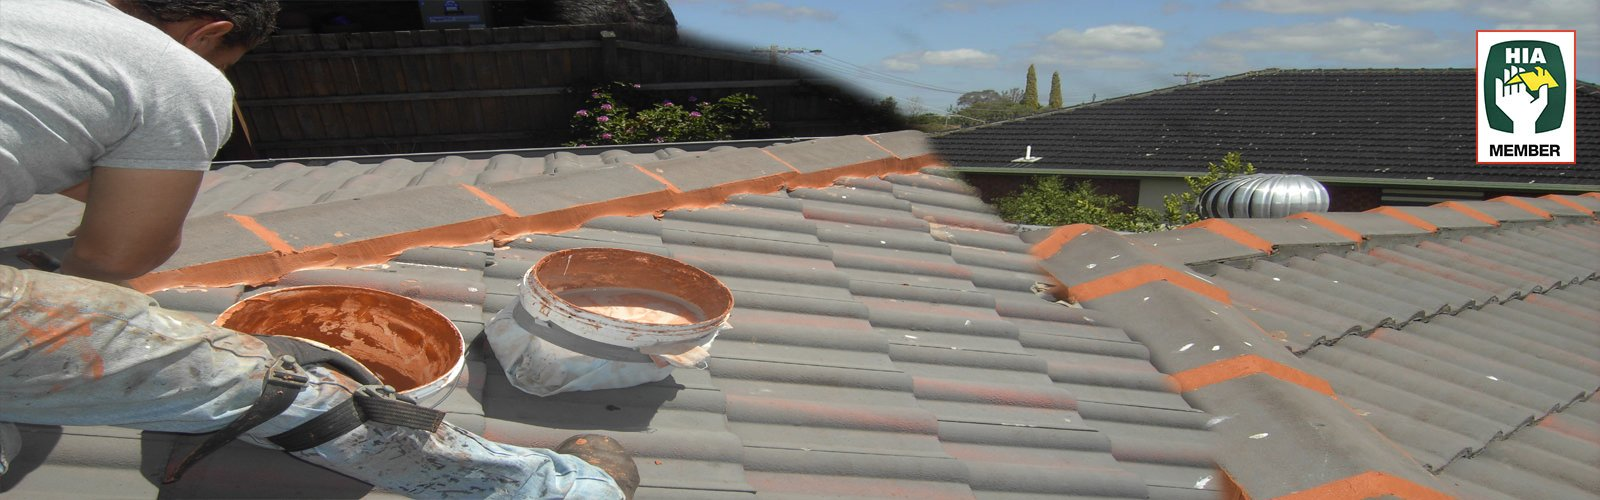 About Roofing Roof Restoration Roof Repairs Painting